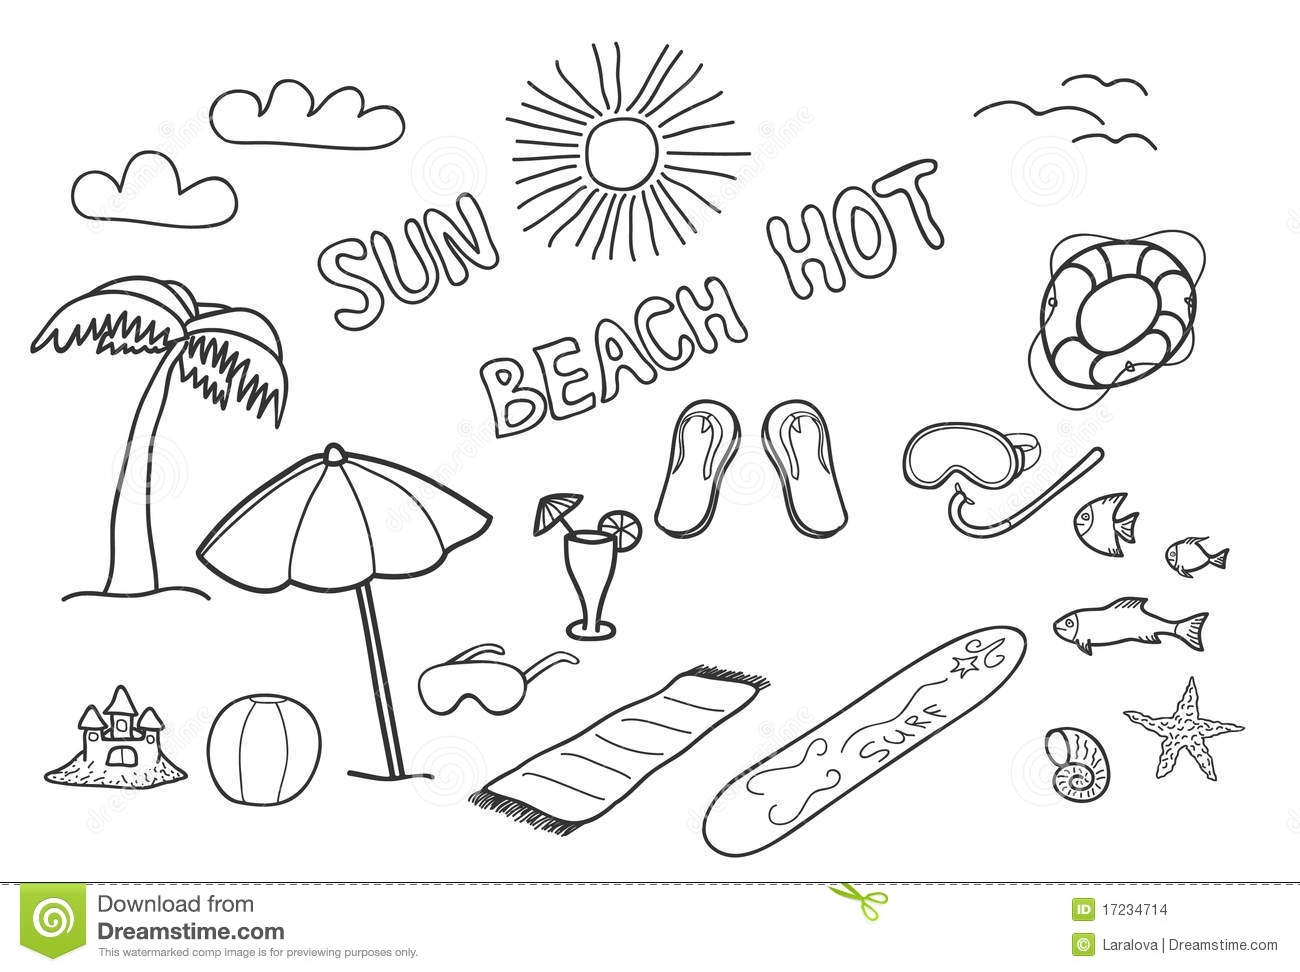 free printable flower coloring pages for adults - stock images beach doodles image